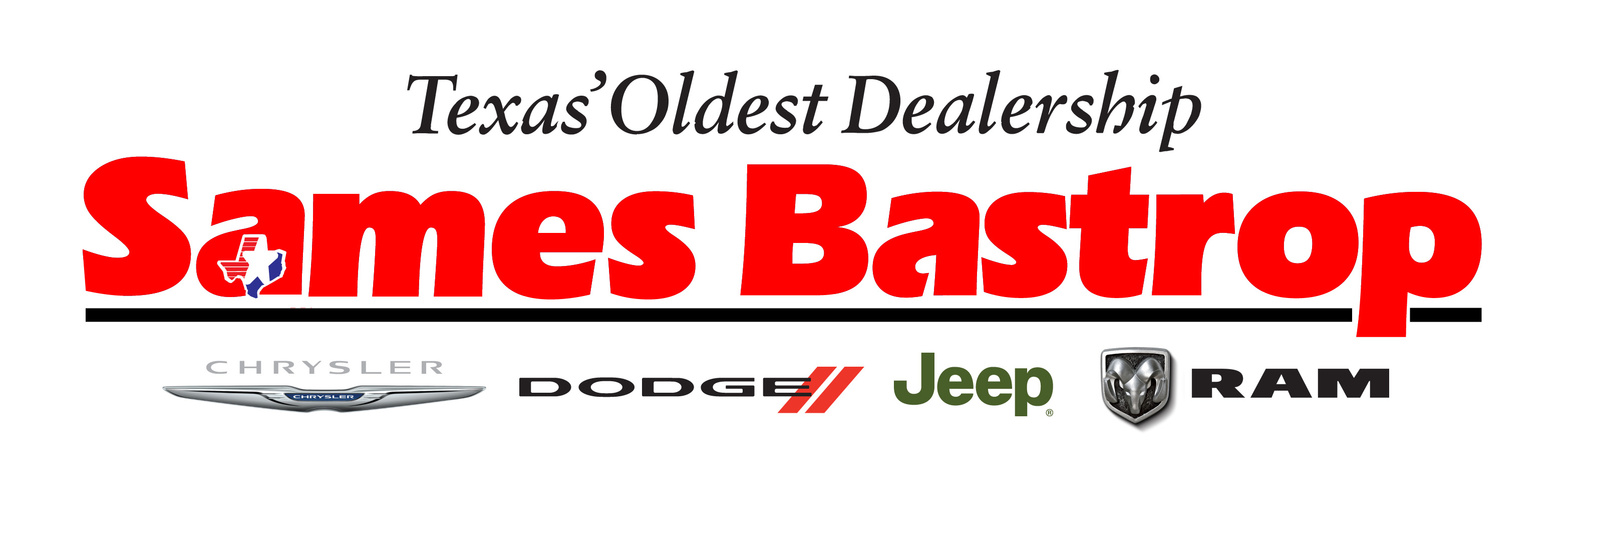 Sames Dodge Bastrop >> Sames Bastrop CDJ - Cedar Creek, TX: Read Consumer reviews, Browse Used and New Cars for Sale